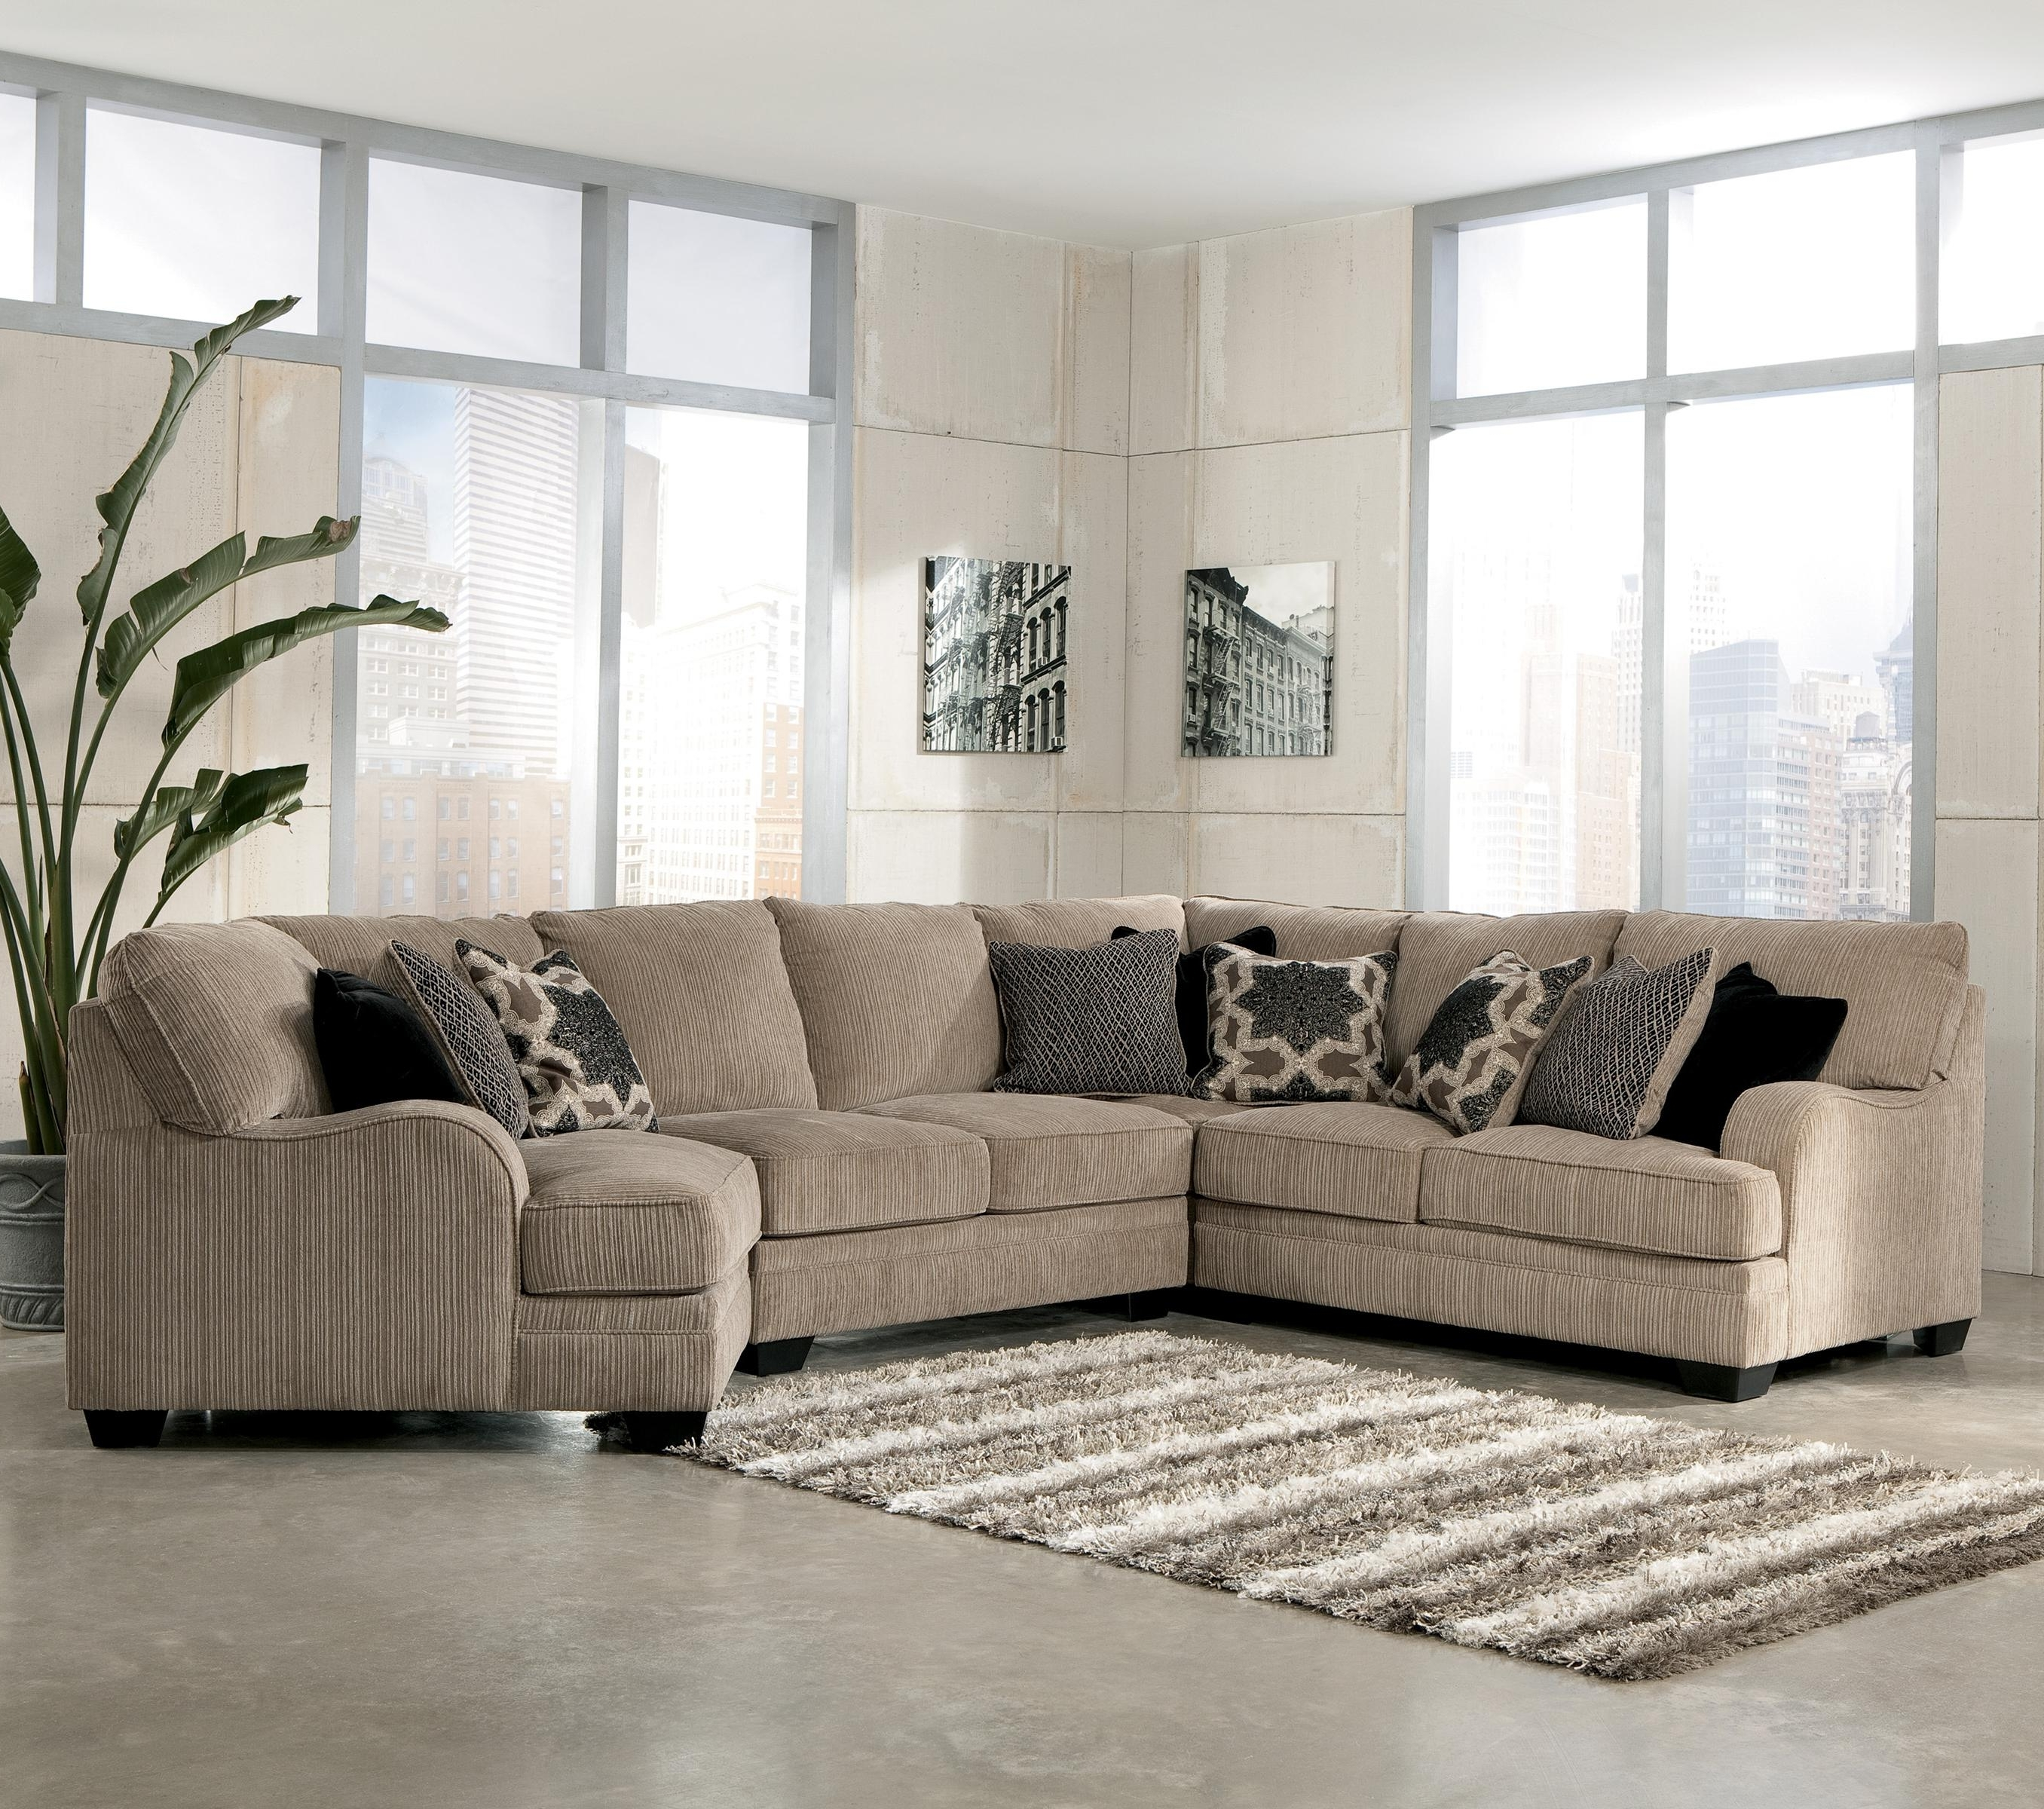 Jackson Ms Sectional Sofas Pertaining To Well Known Signature Designashley Katisha – Platinum 4 Piece Sectional (View 9 of 20)